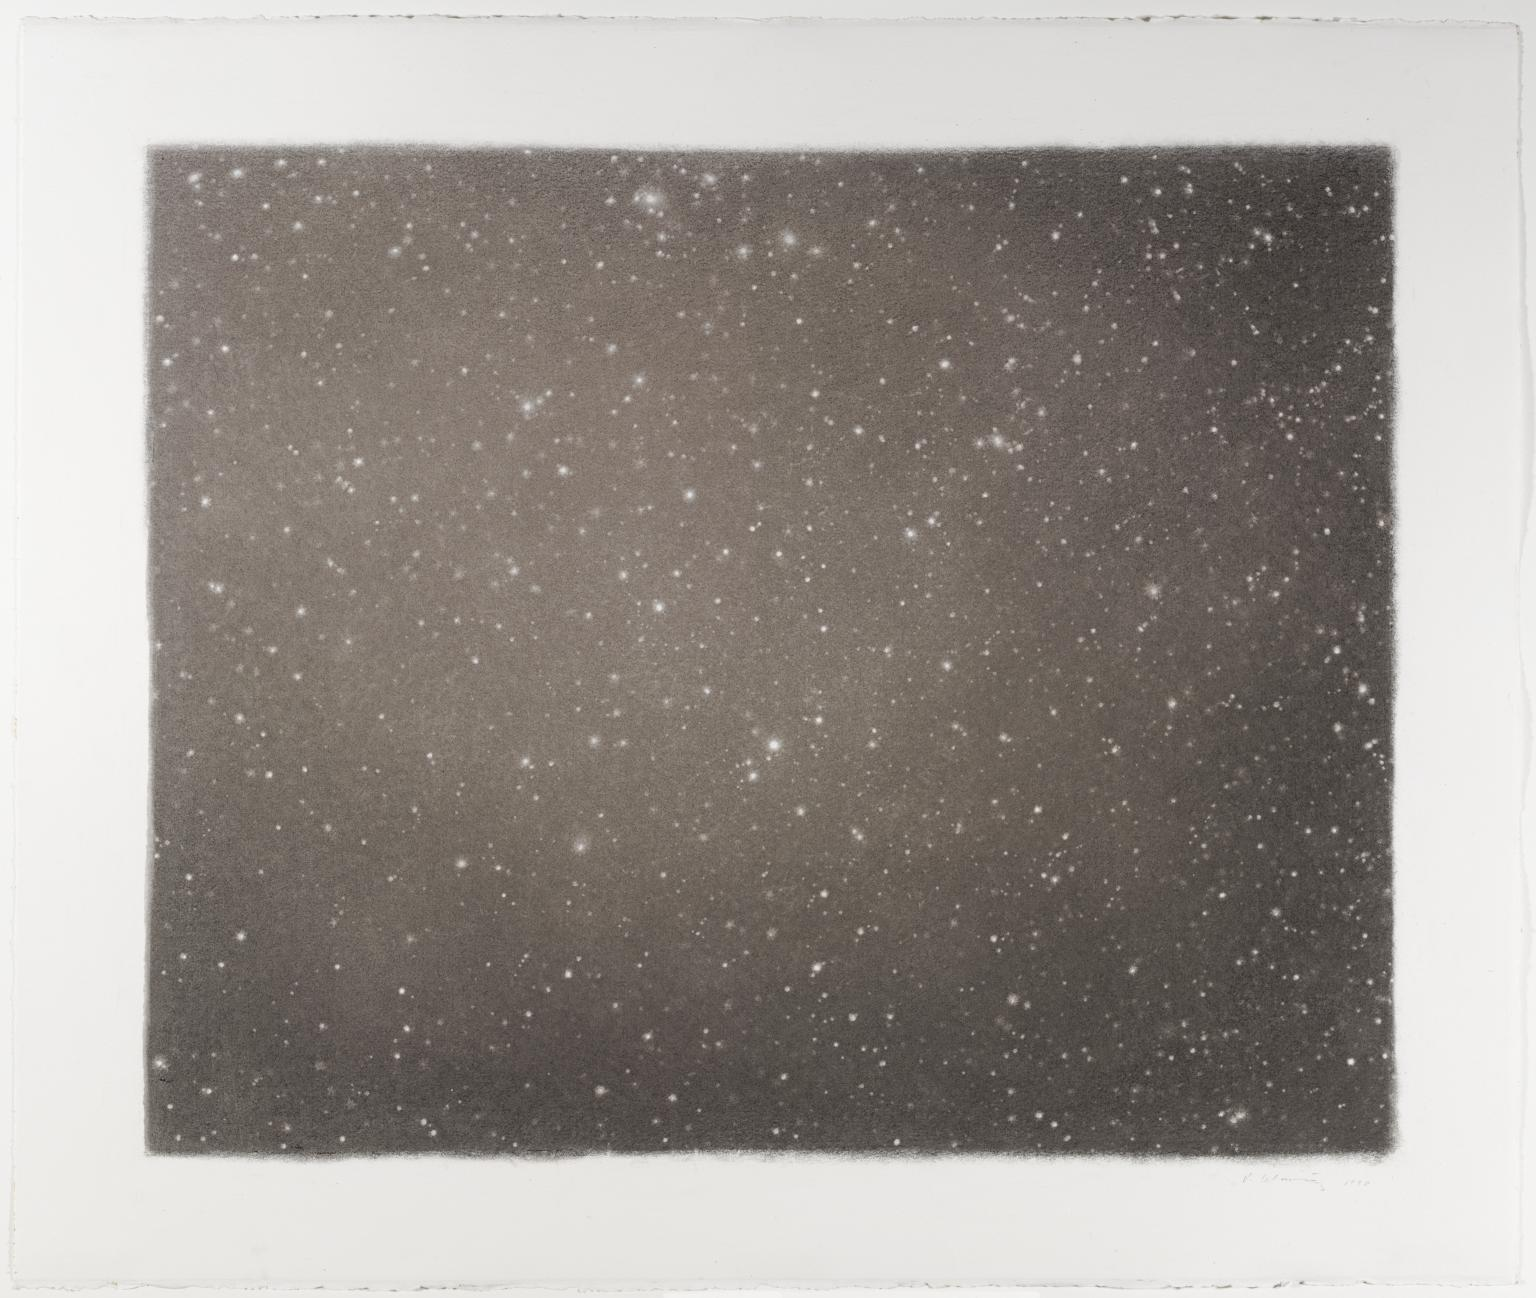 Night Sky #19 1998 by Vija Celmins born 1938